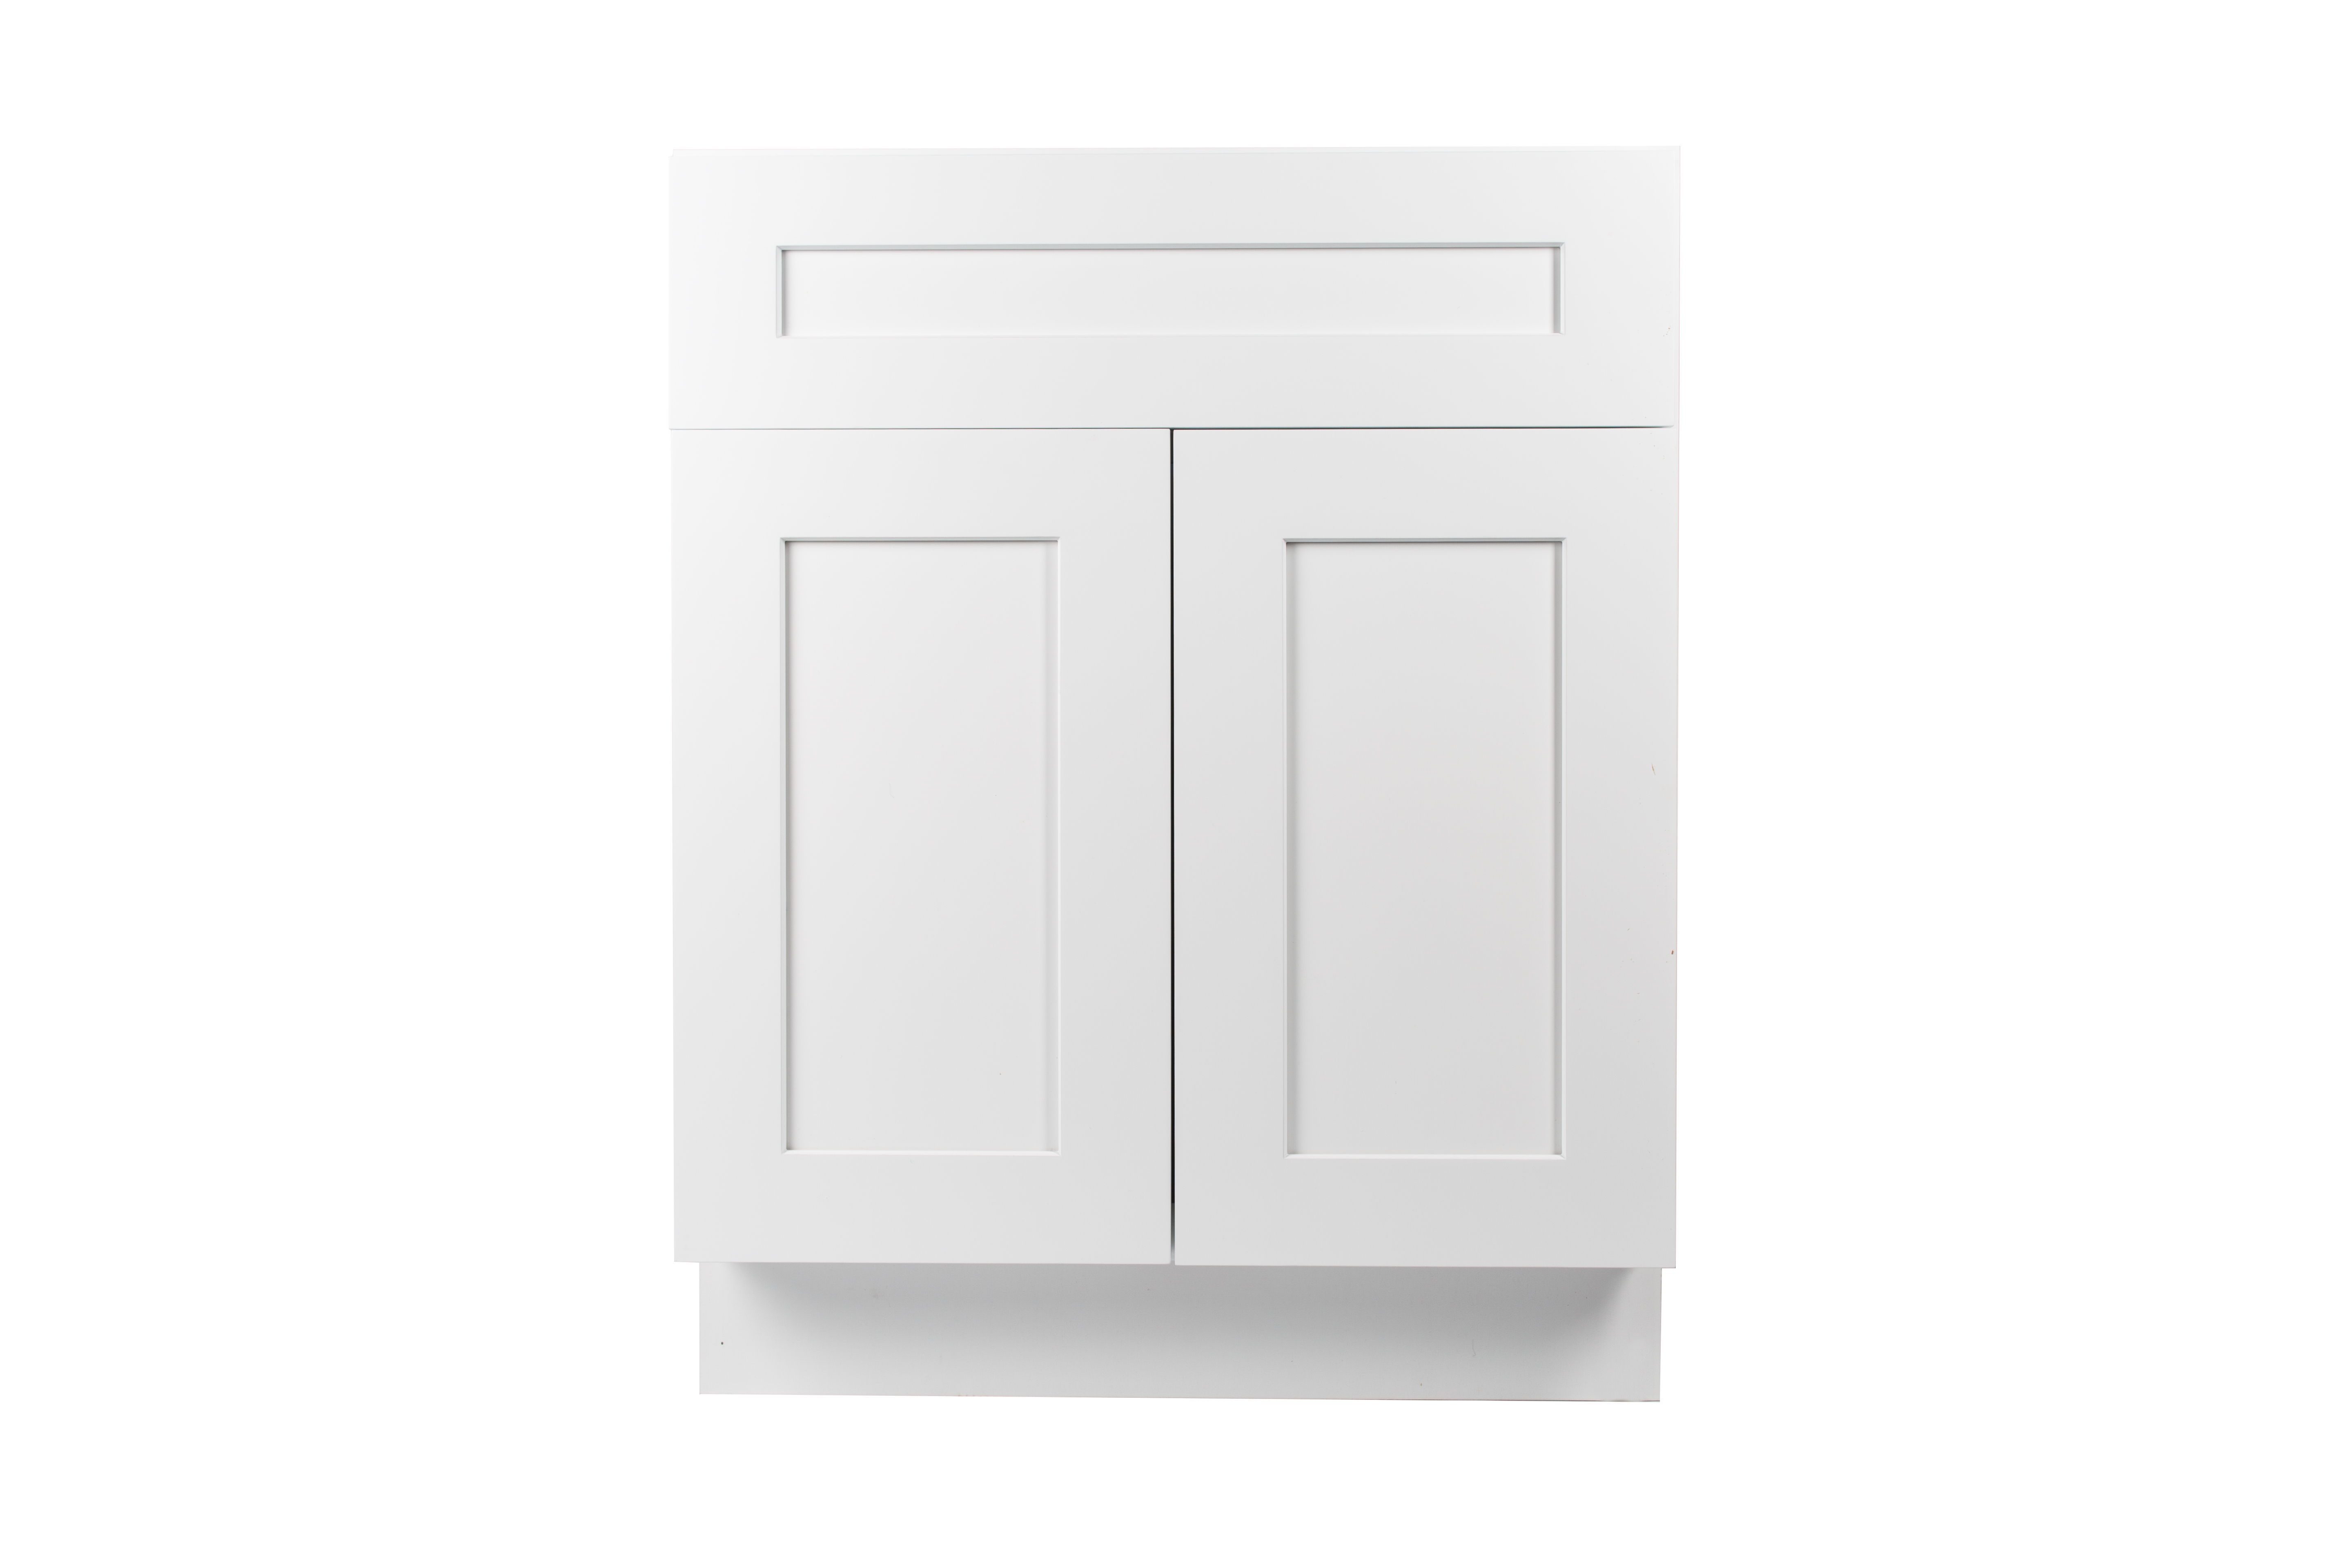 Ready to Assemble 36Wx34.5Hx21D in. Shaker  VANITY SINK BASE CABINET-1-FAKE DRAWER ,2 DOORS in White